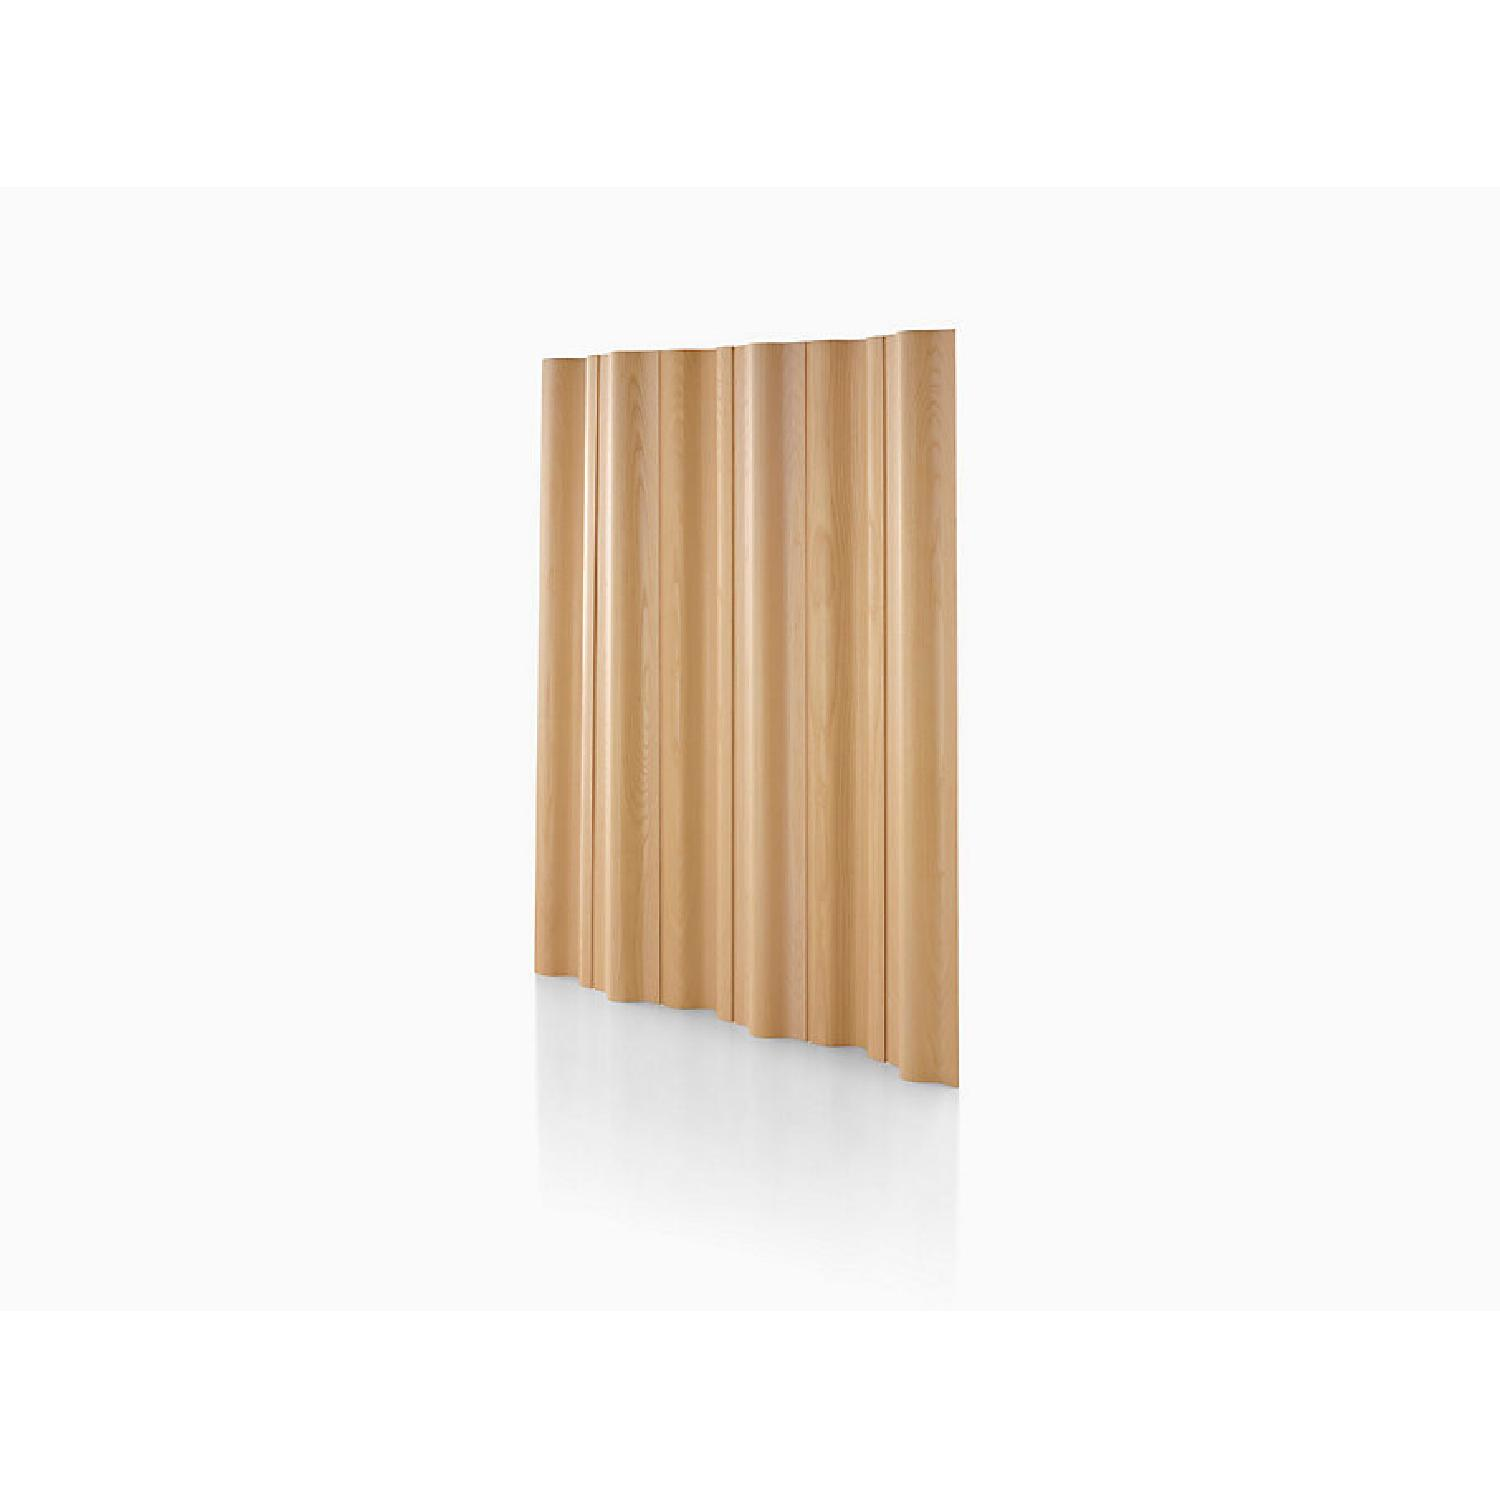 Charles & Ray Eames Molded Plywood Folding Screen - image-0